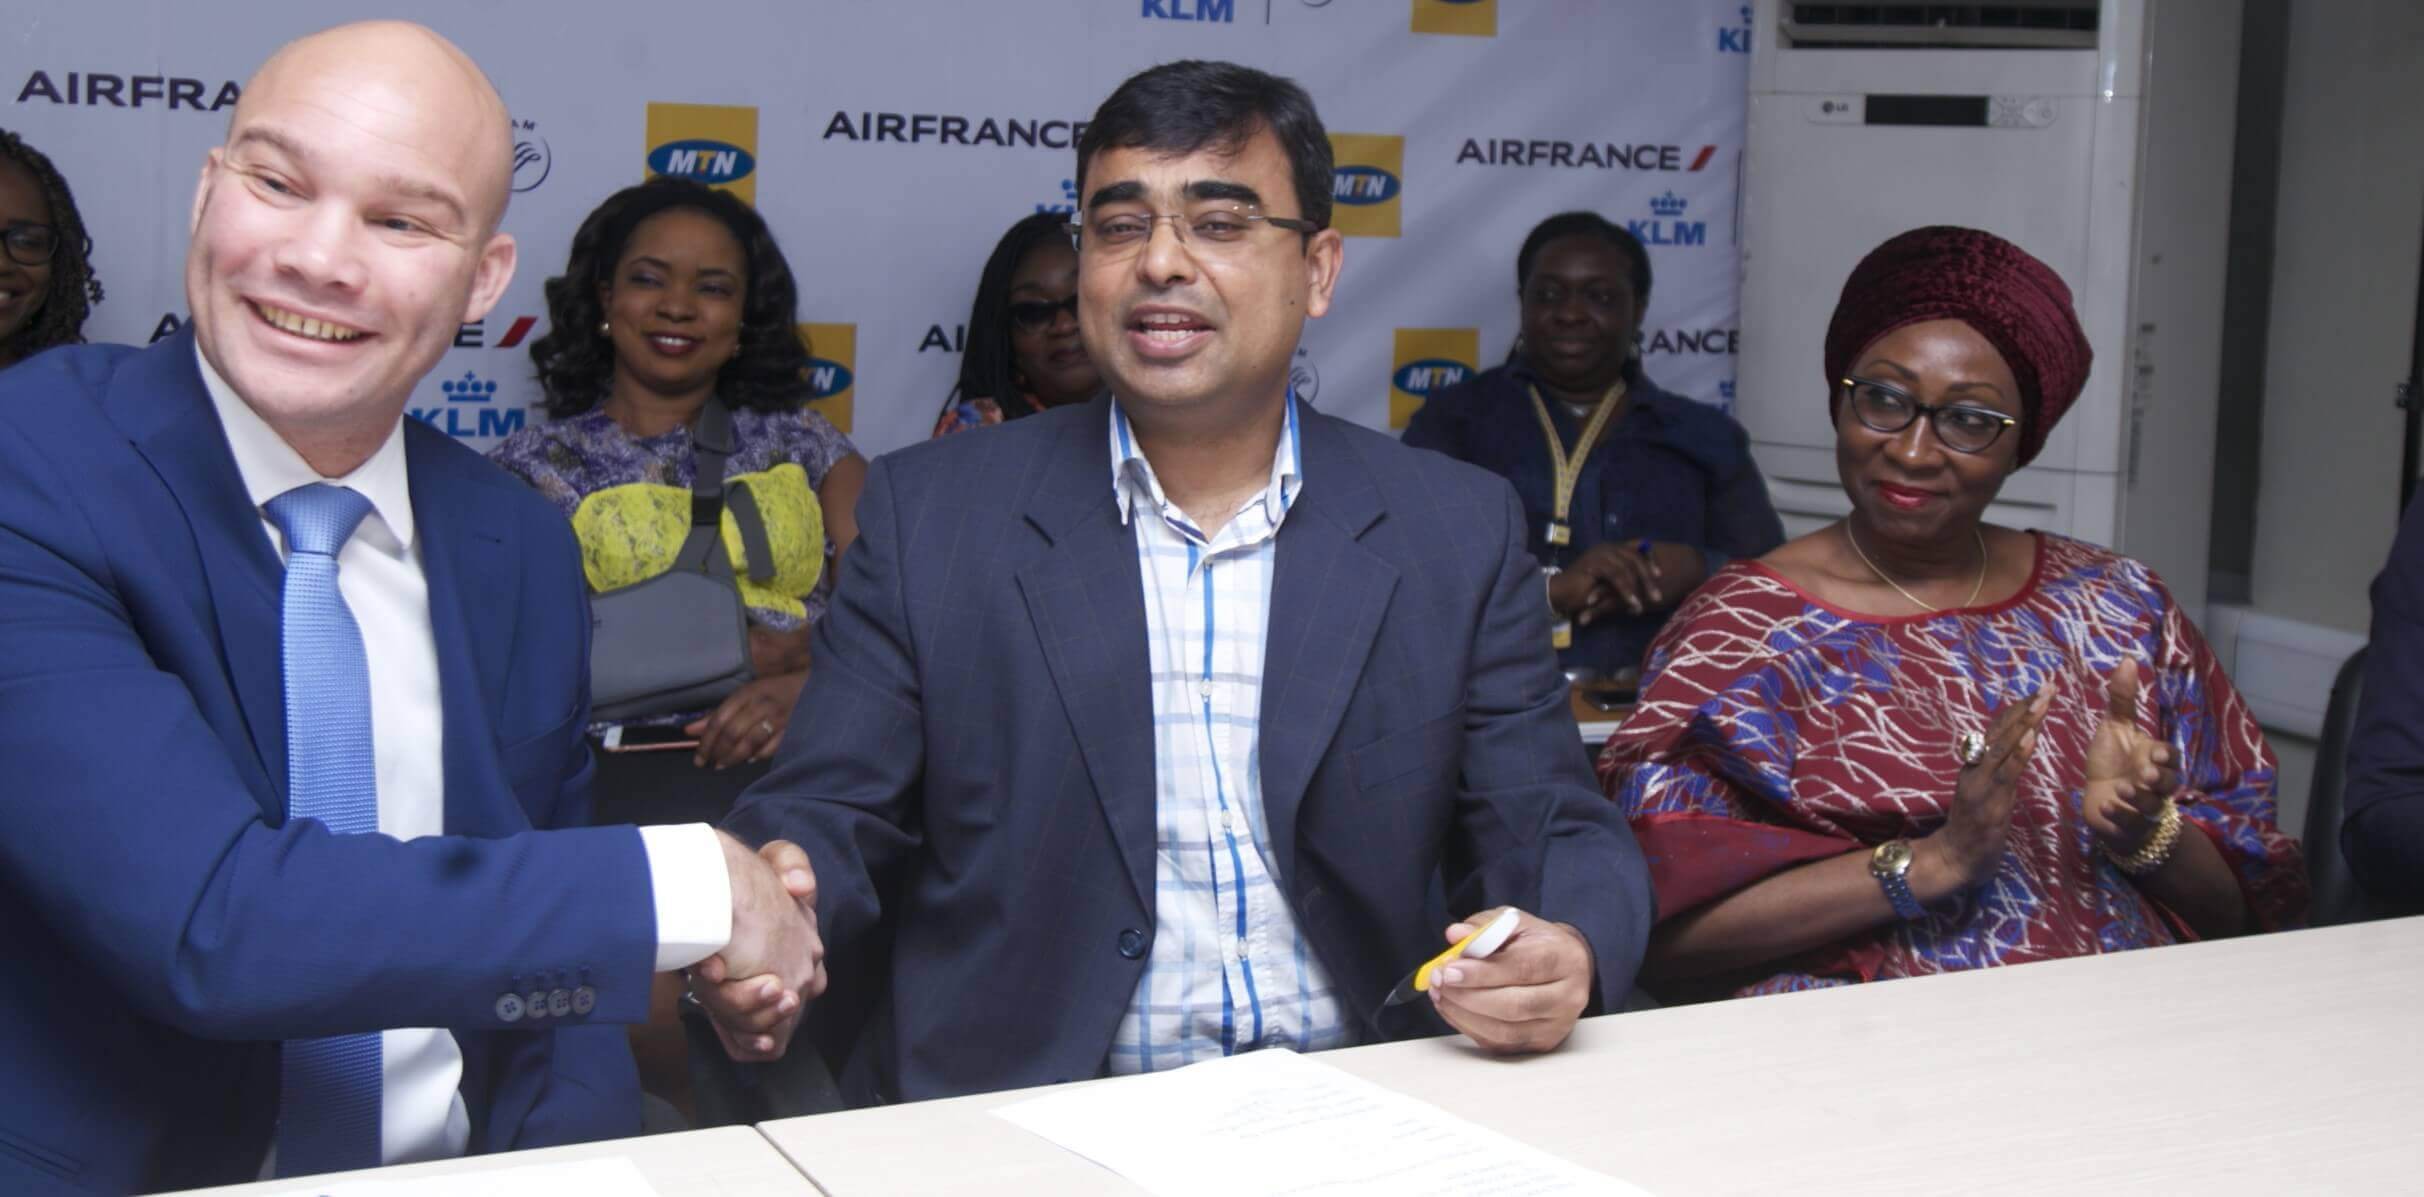 Commercial Director Nigeria and Ghana, Air France KLM, Mr. Arthur Dieffenthaler; Chief Marketing Officer, MTN Nigeria, Mr. Rahul De and Human Resource and Corporate Services Executive, Mrs. Amina Oyagbola at the MTN – Air France KLM partnership announcement in Lagos